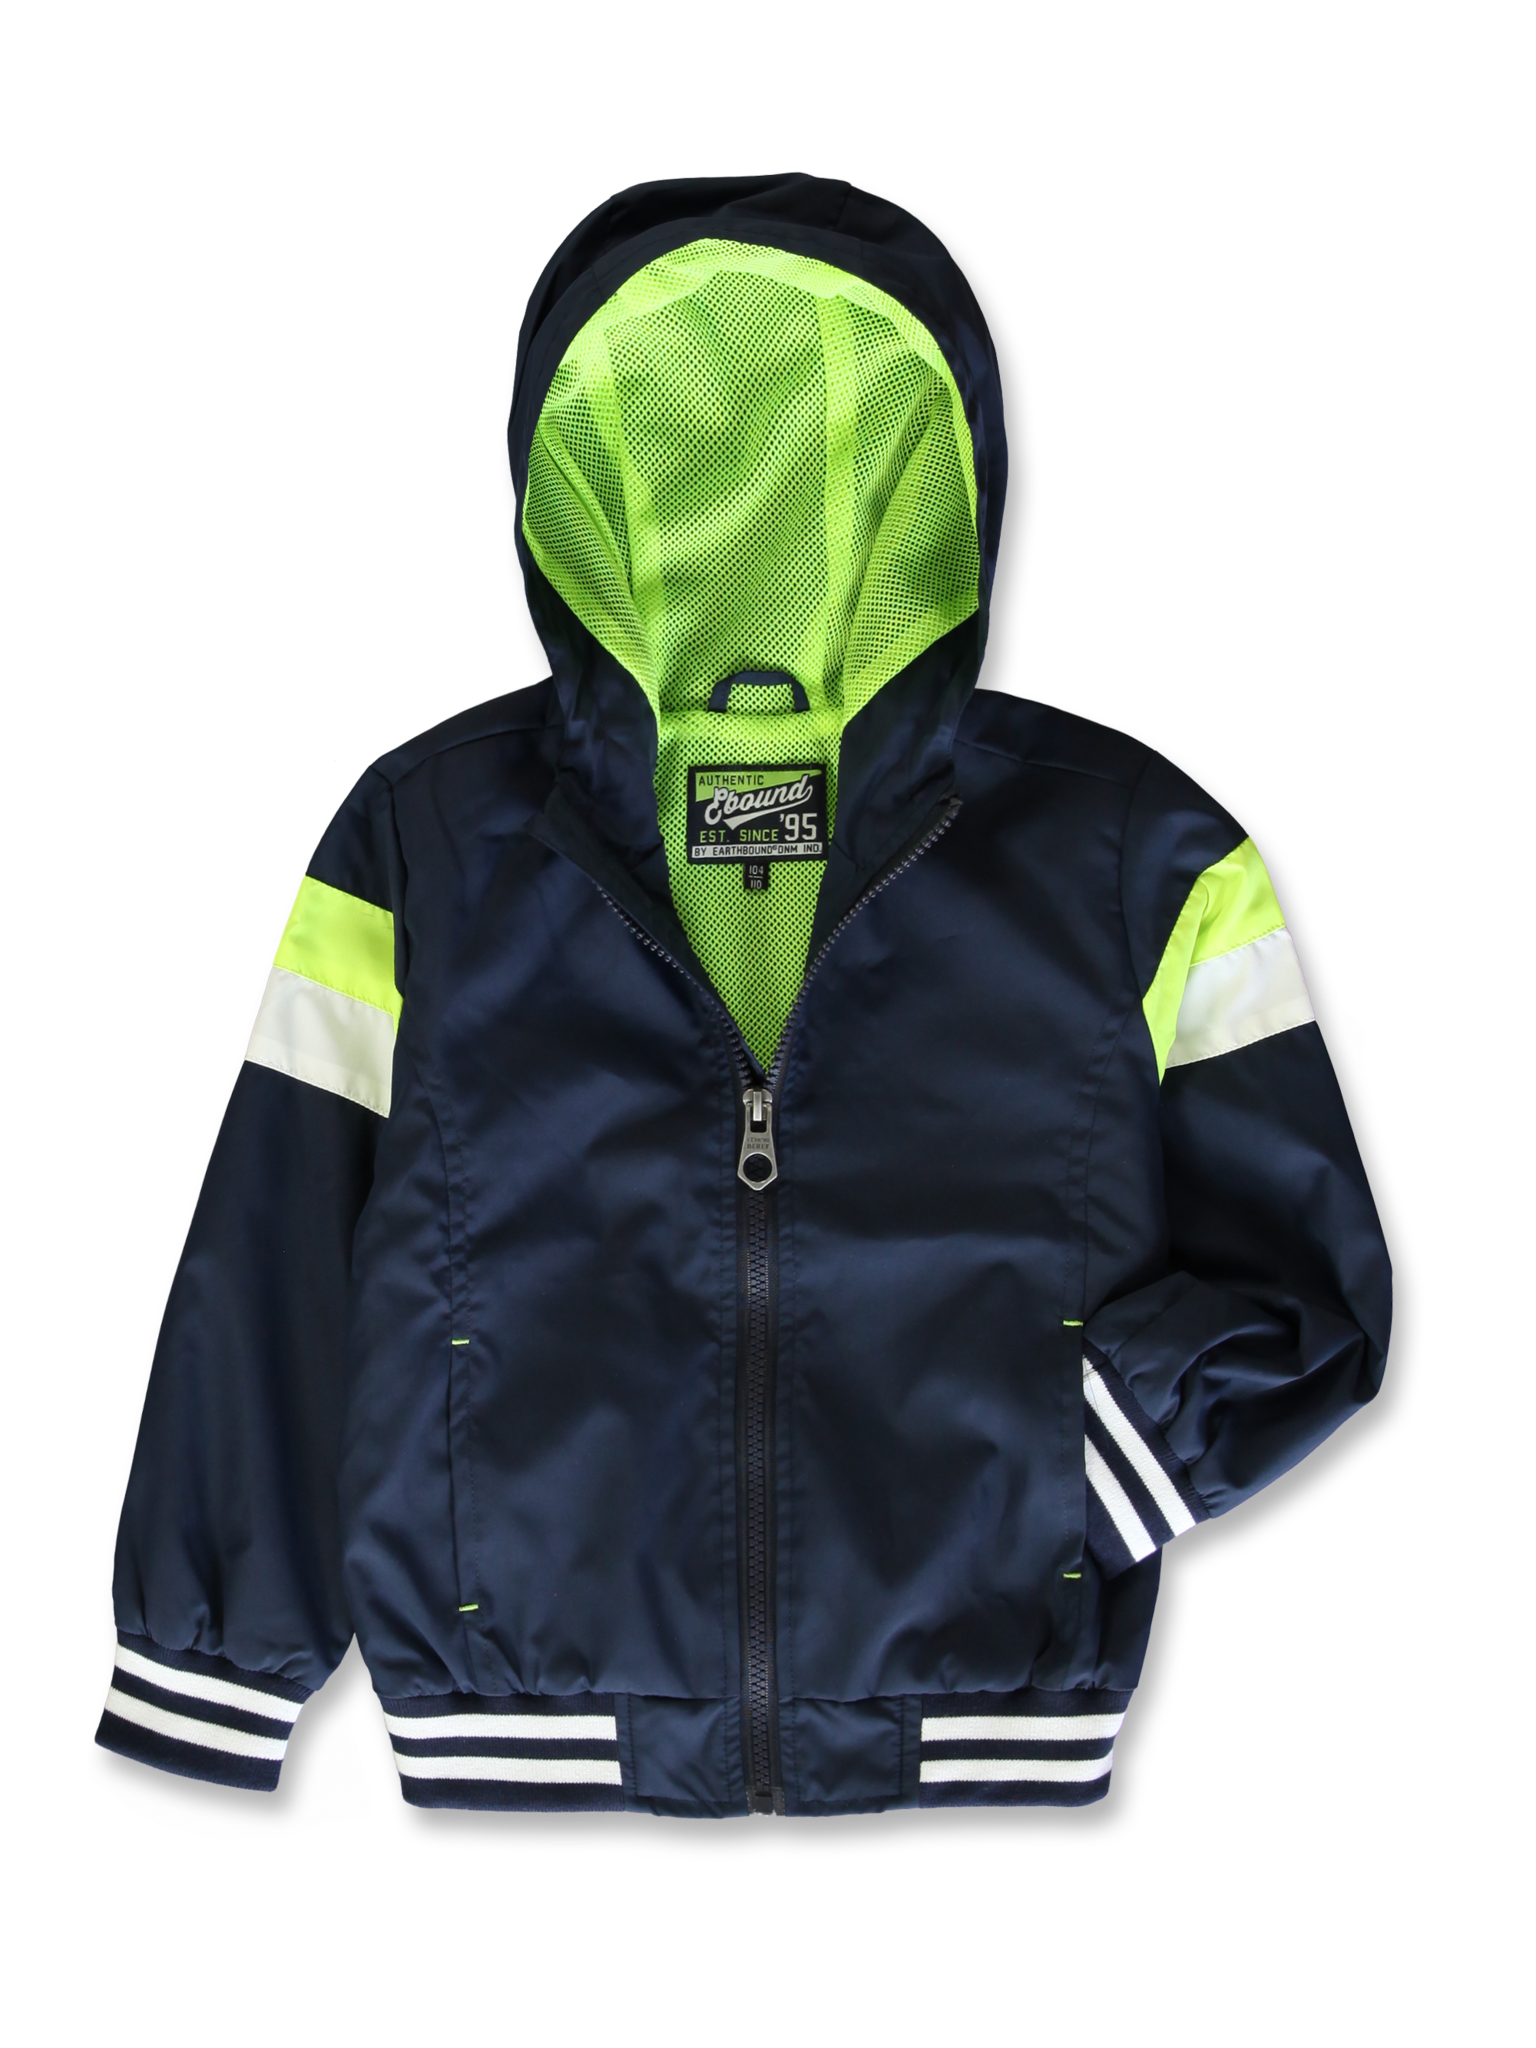 All Brands | Summerproducts Small Boys | Jacket | 10 pcs/box